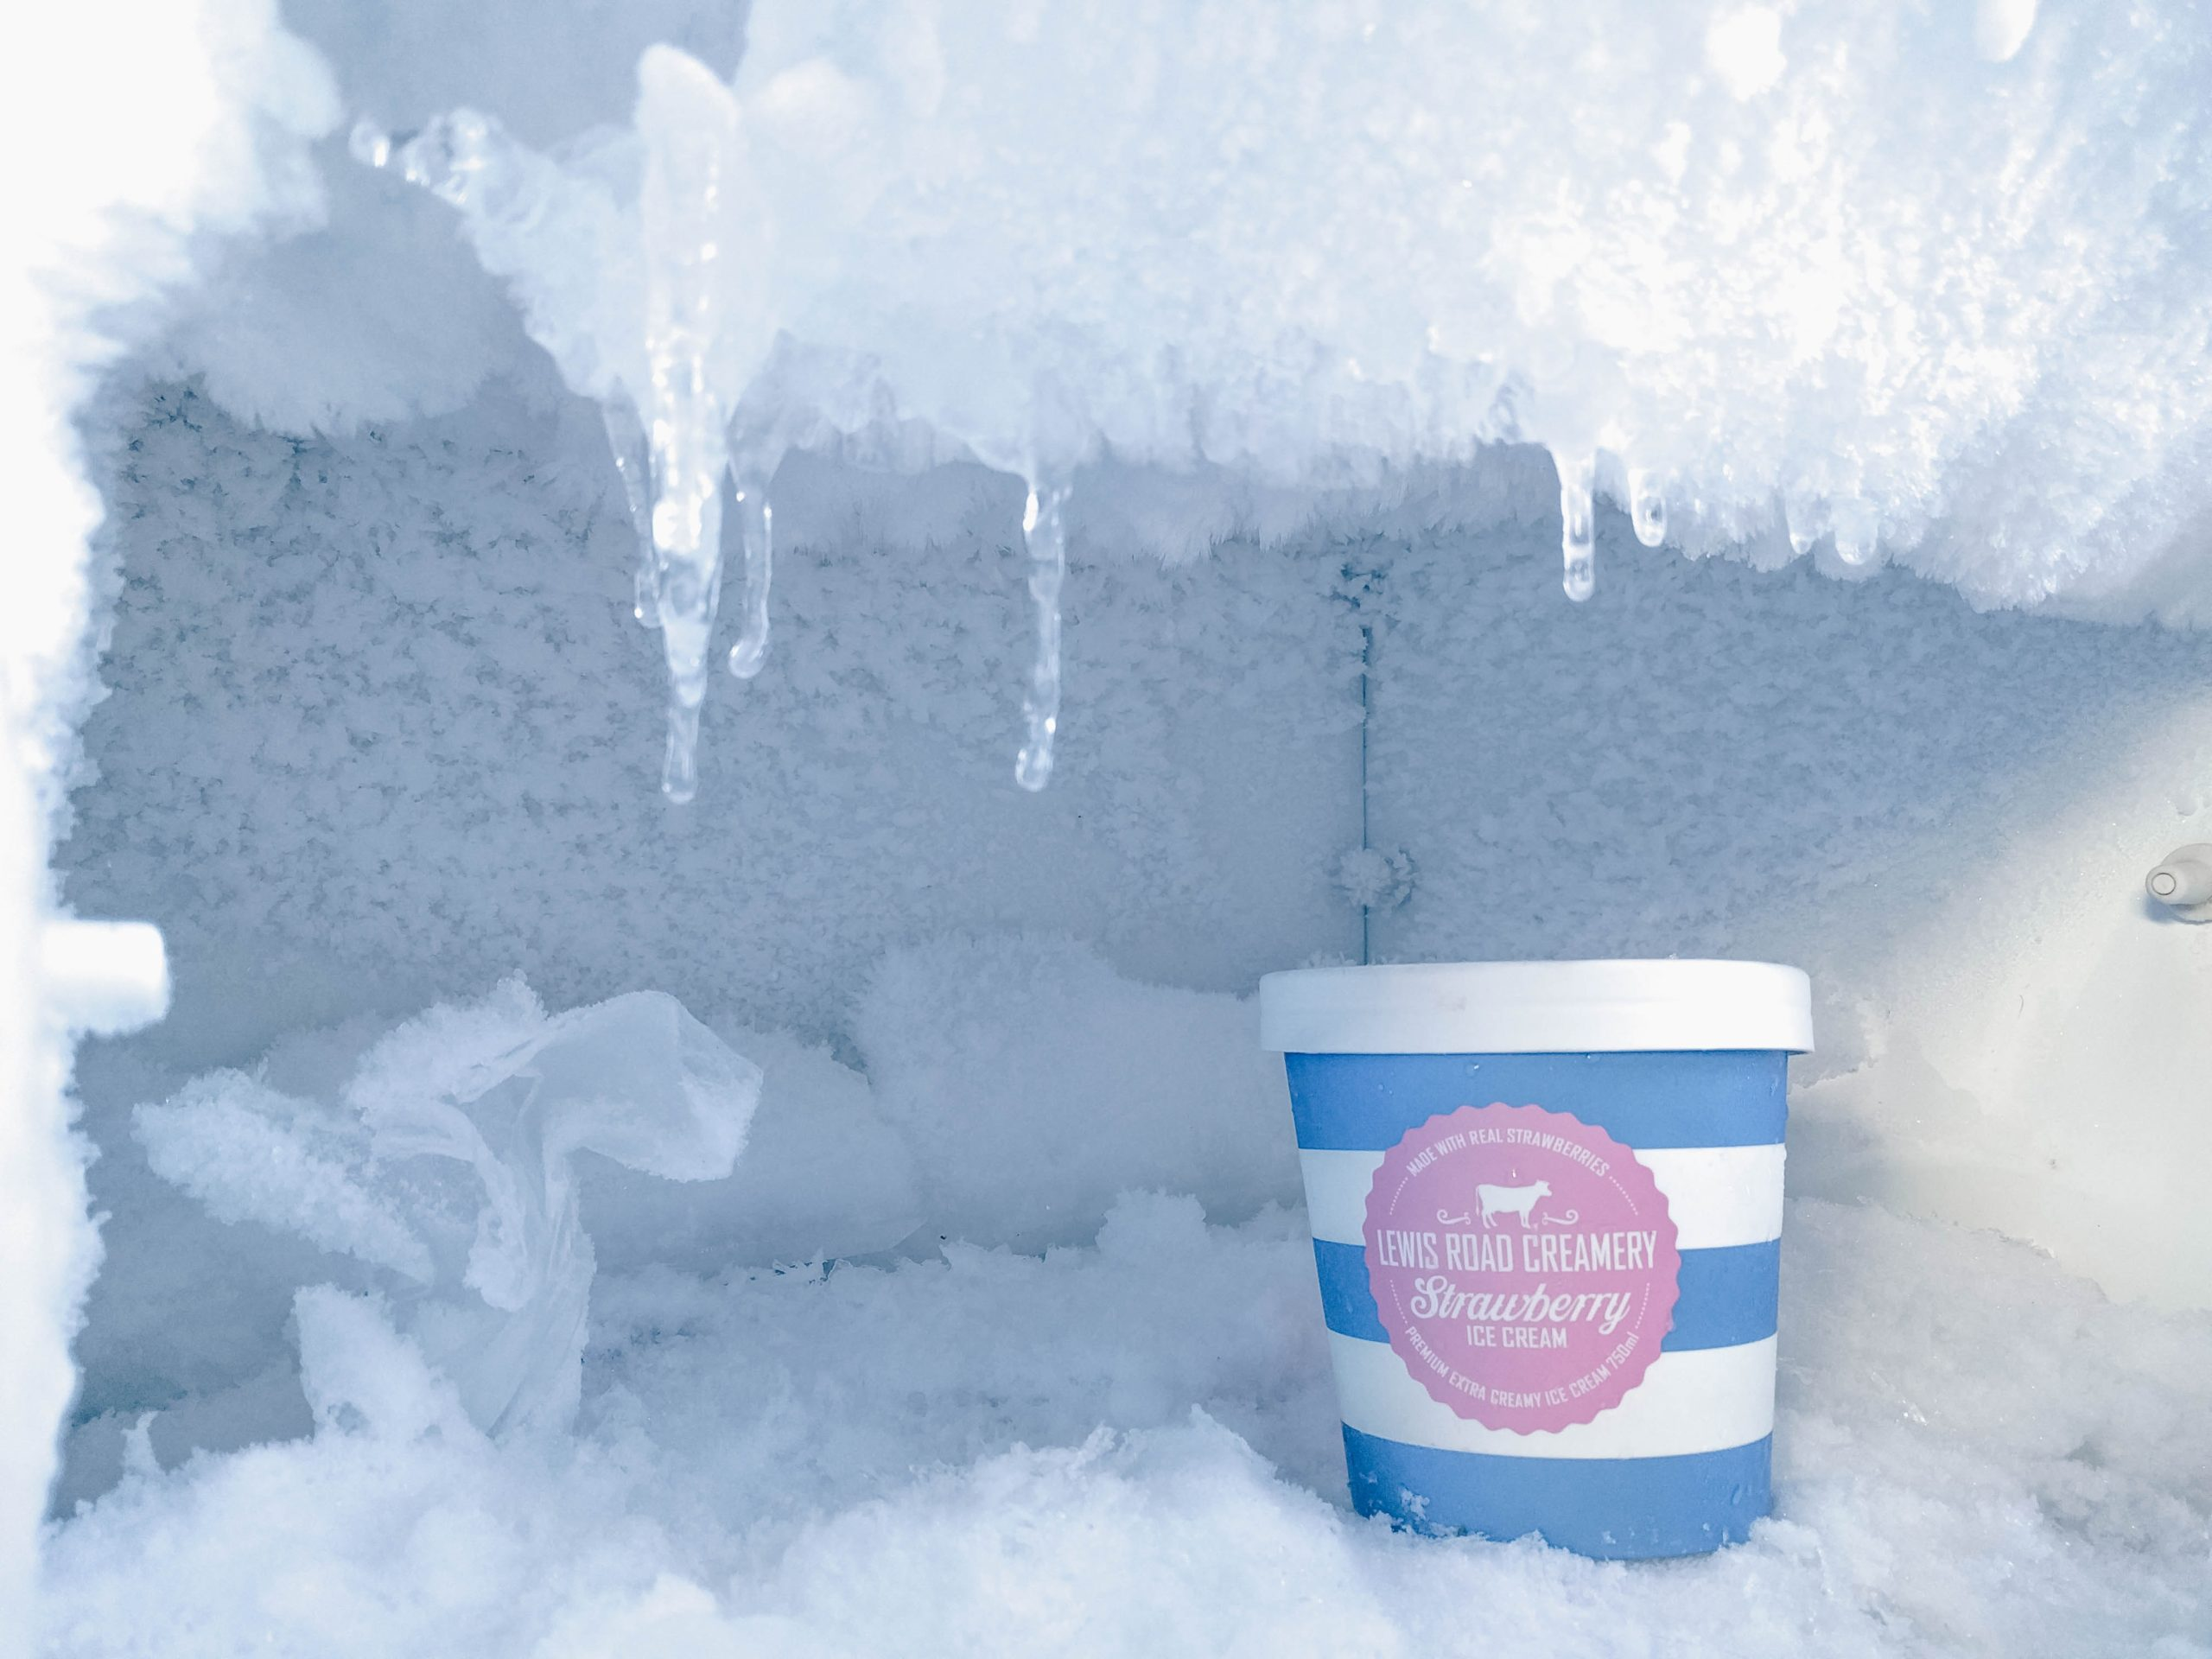 A tub of ice cream in a freezer.